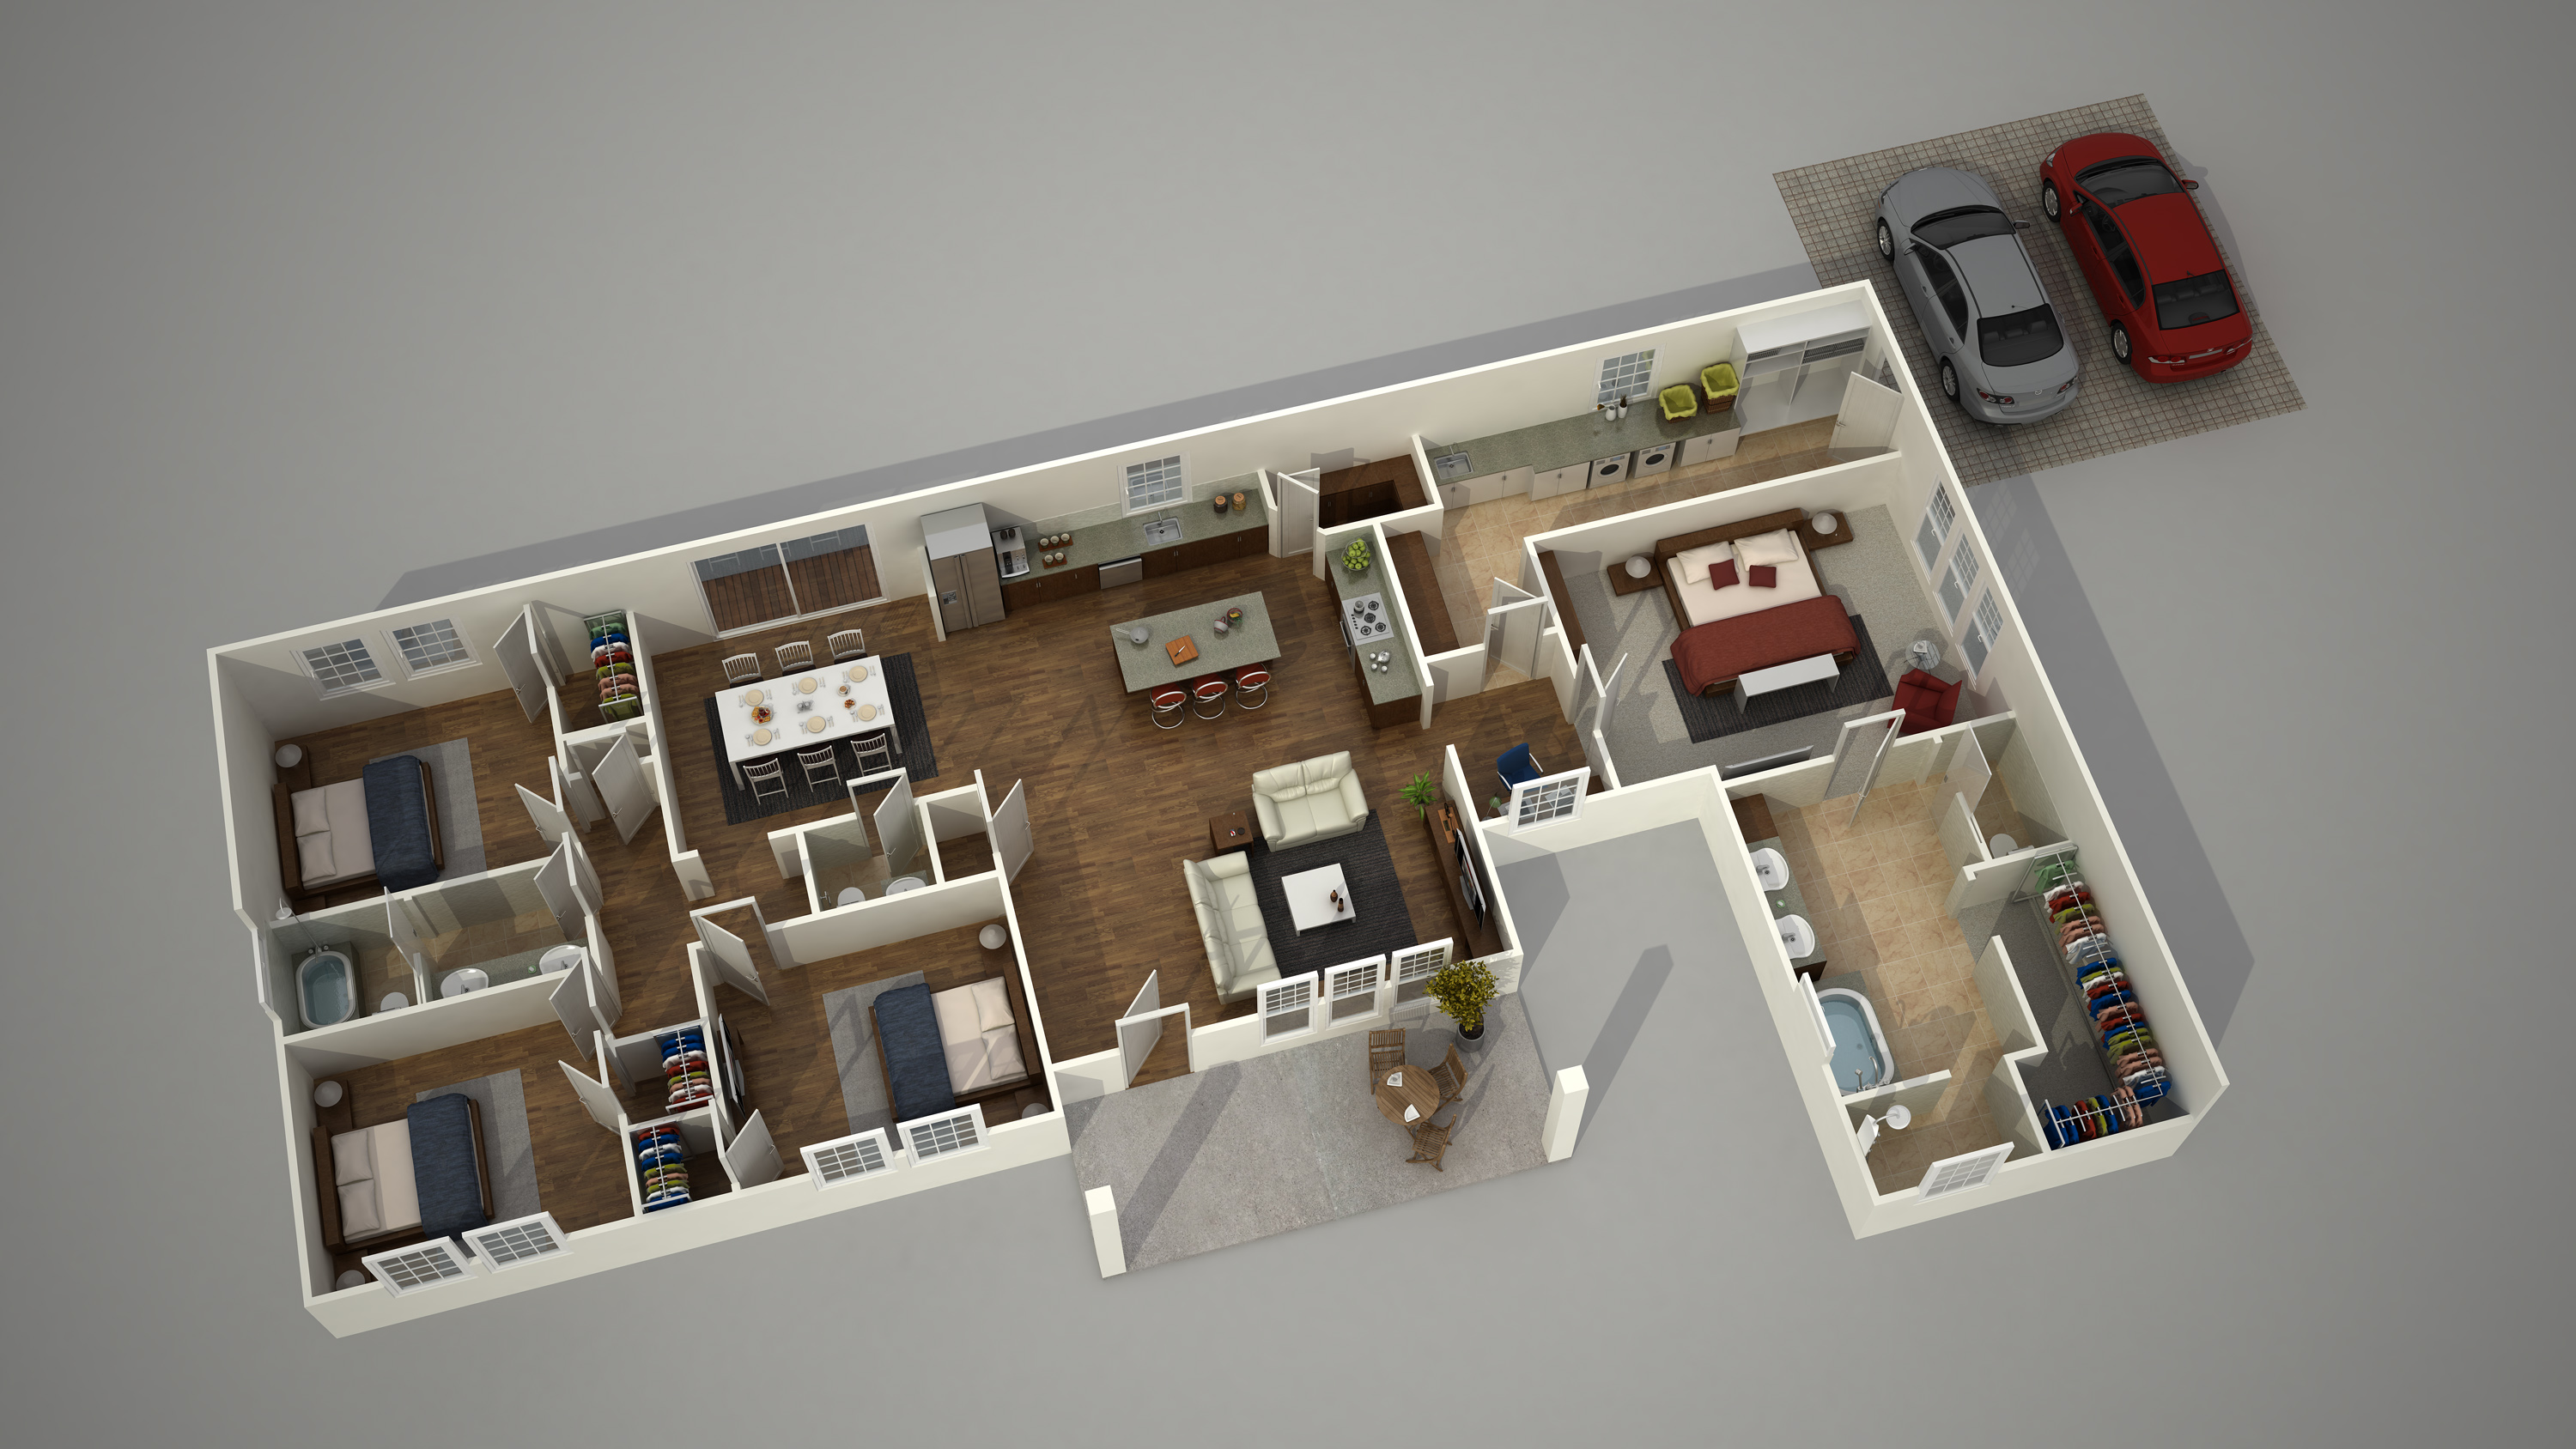 3d ground floor plan rendering isometric view - 3d Plan Drawing